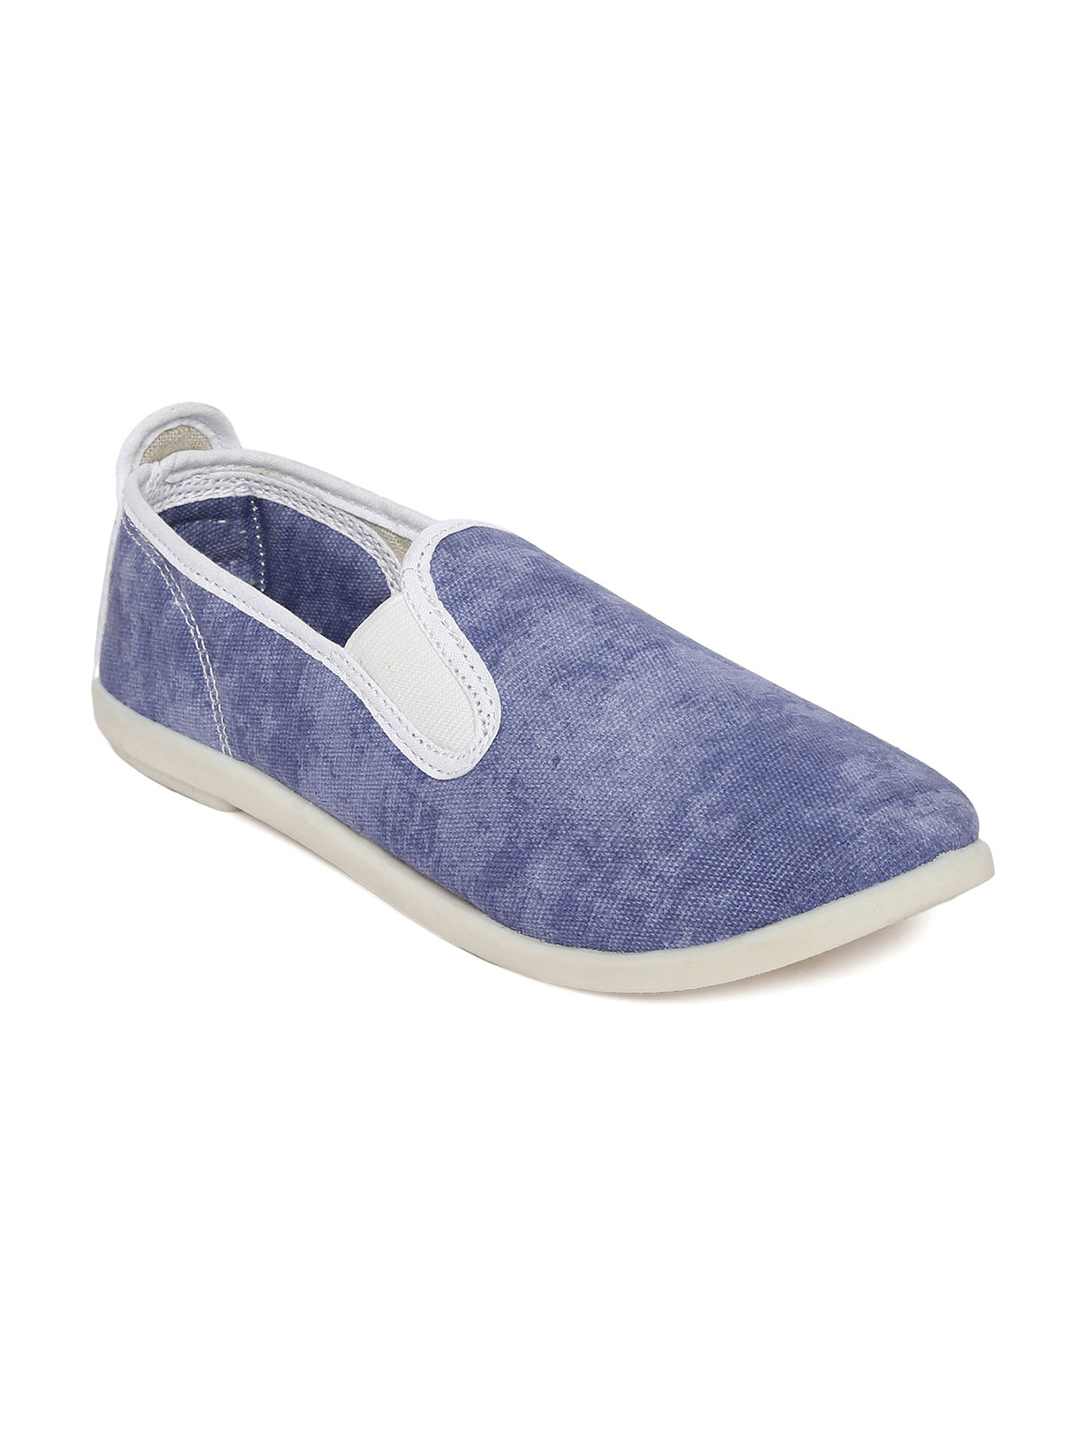 SCENTRA Women Blue Slip-On Sneakers Price in India